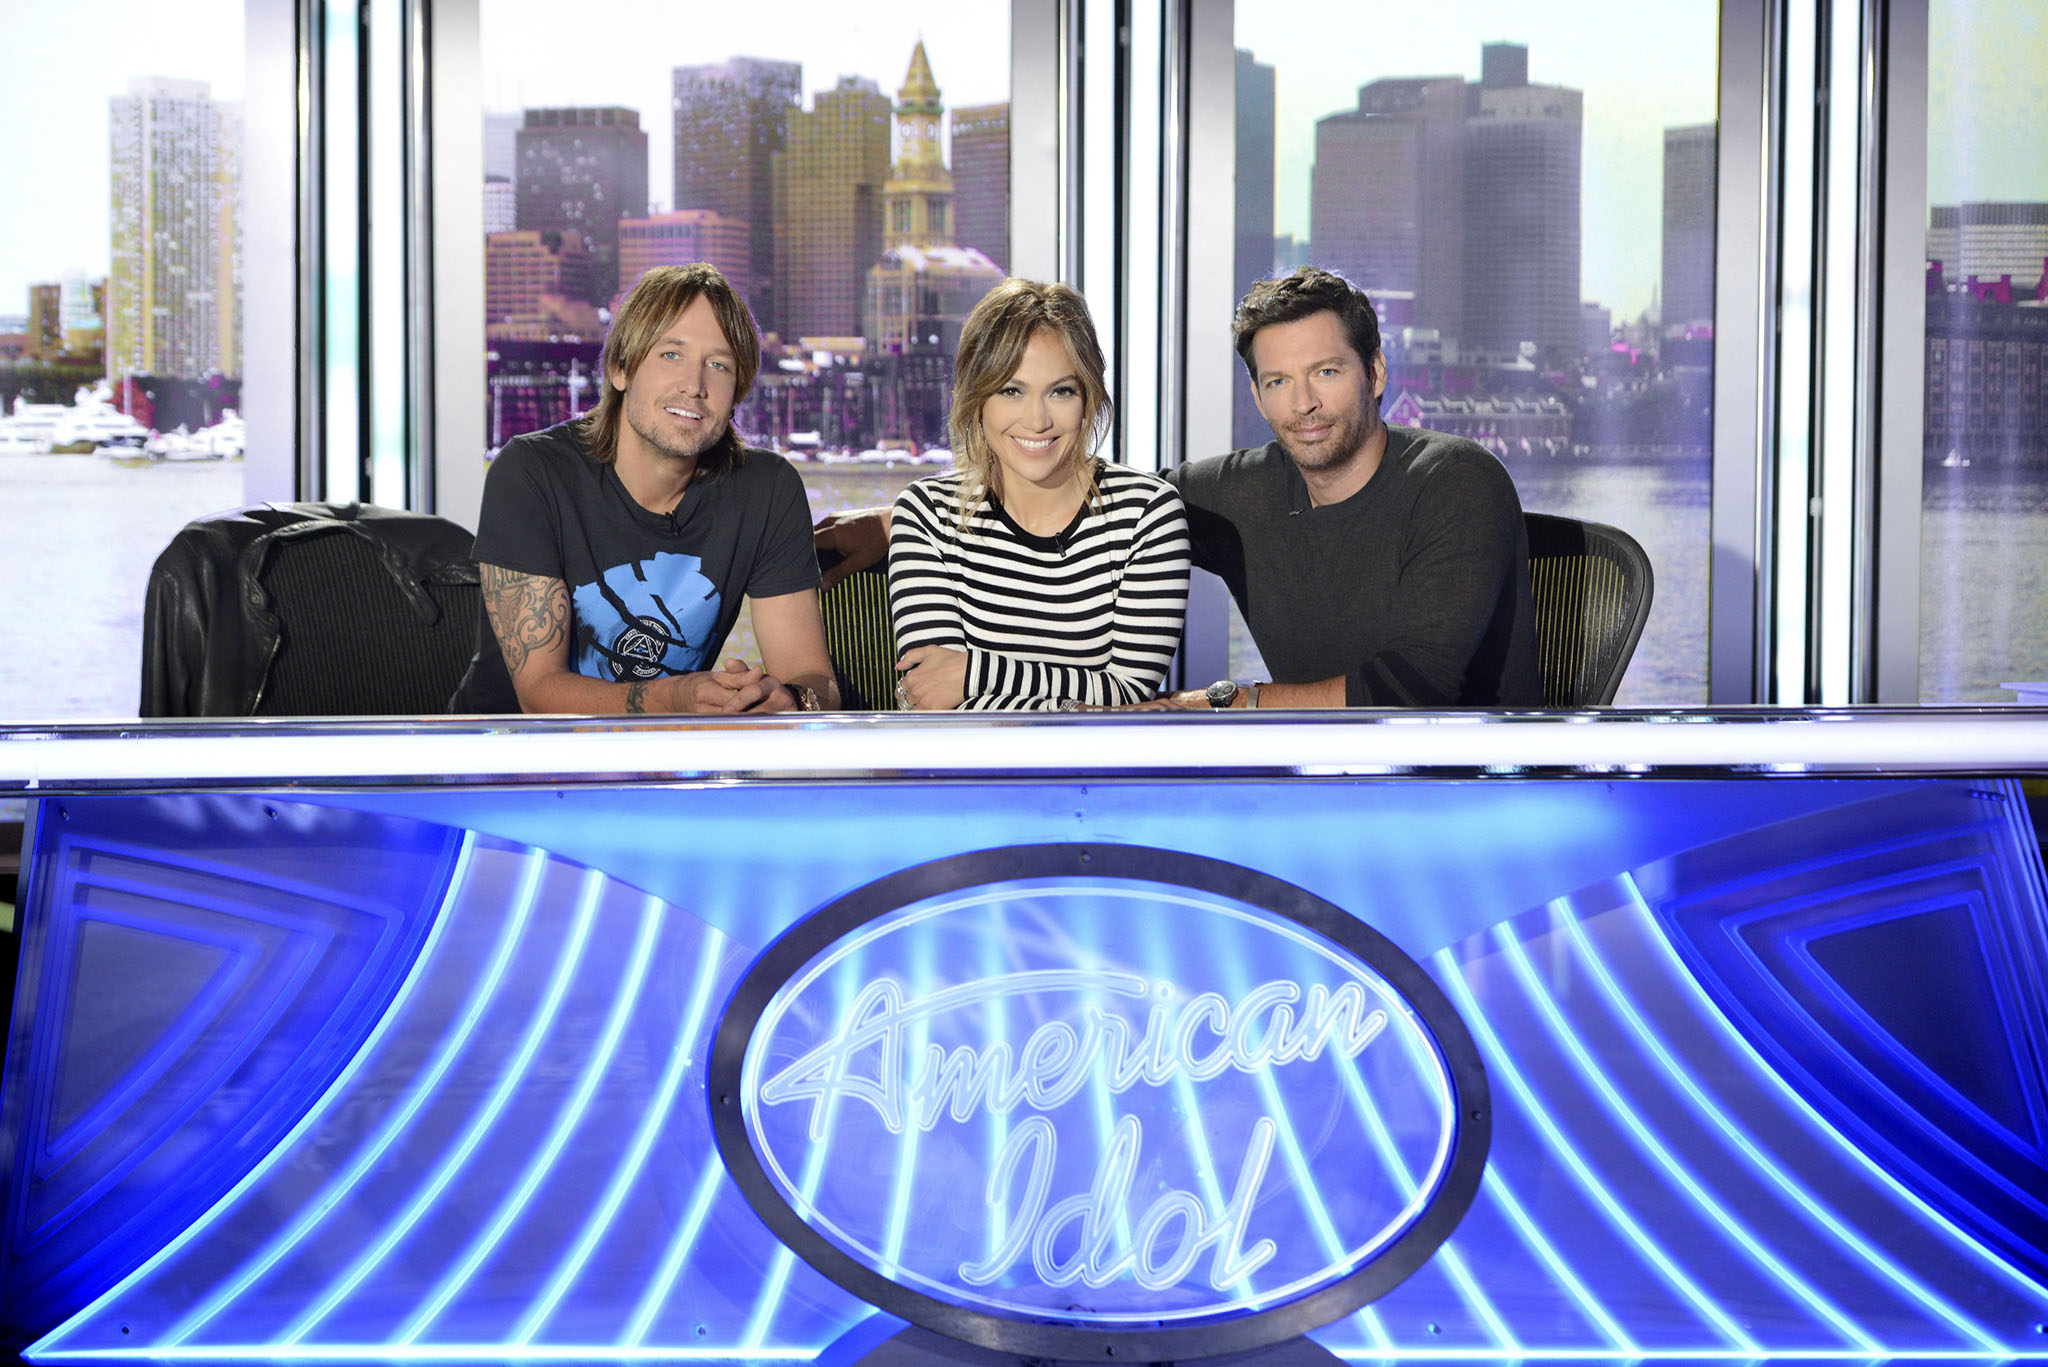 'American Idol' Judges' Panel: Is a Bromance Blooming?